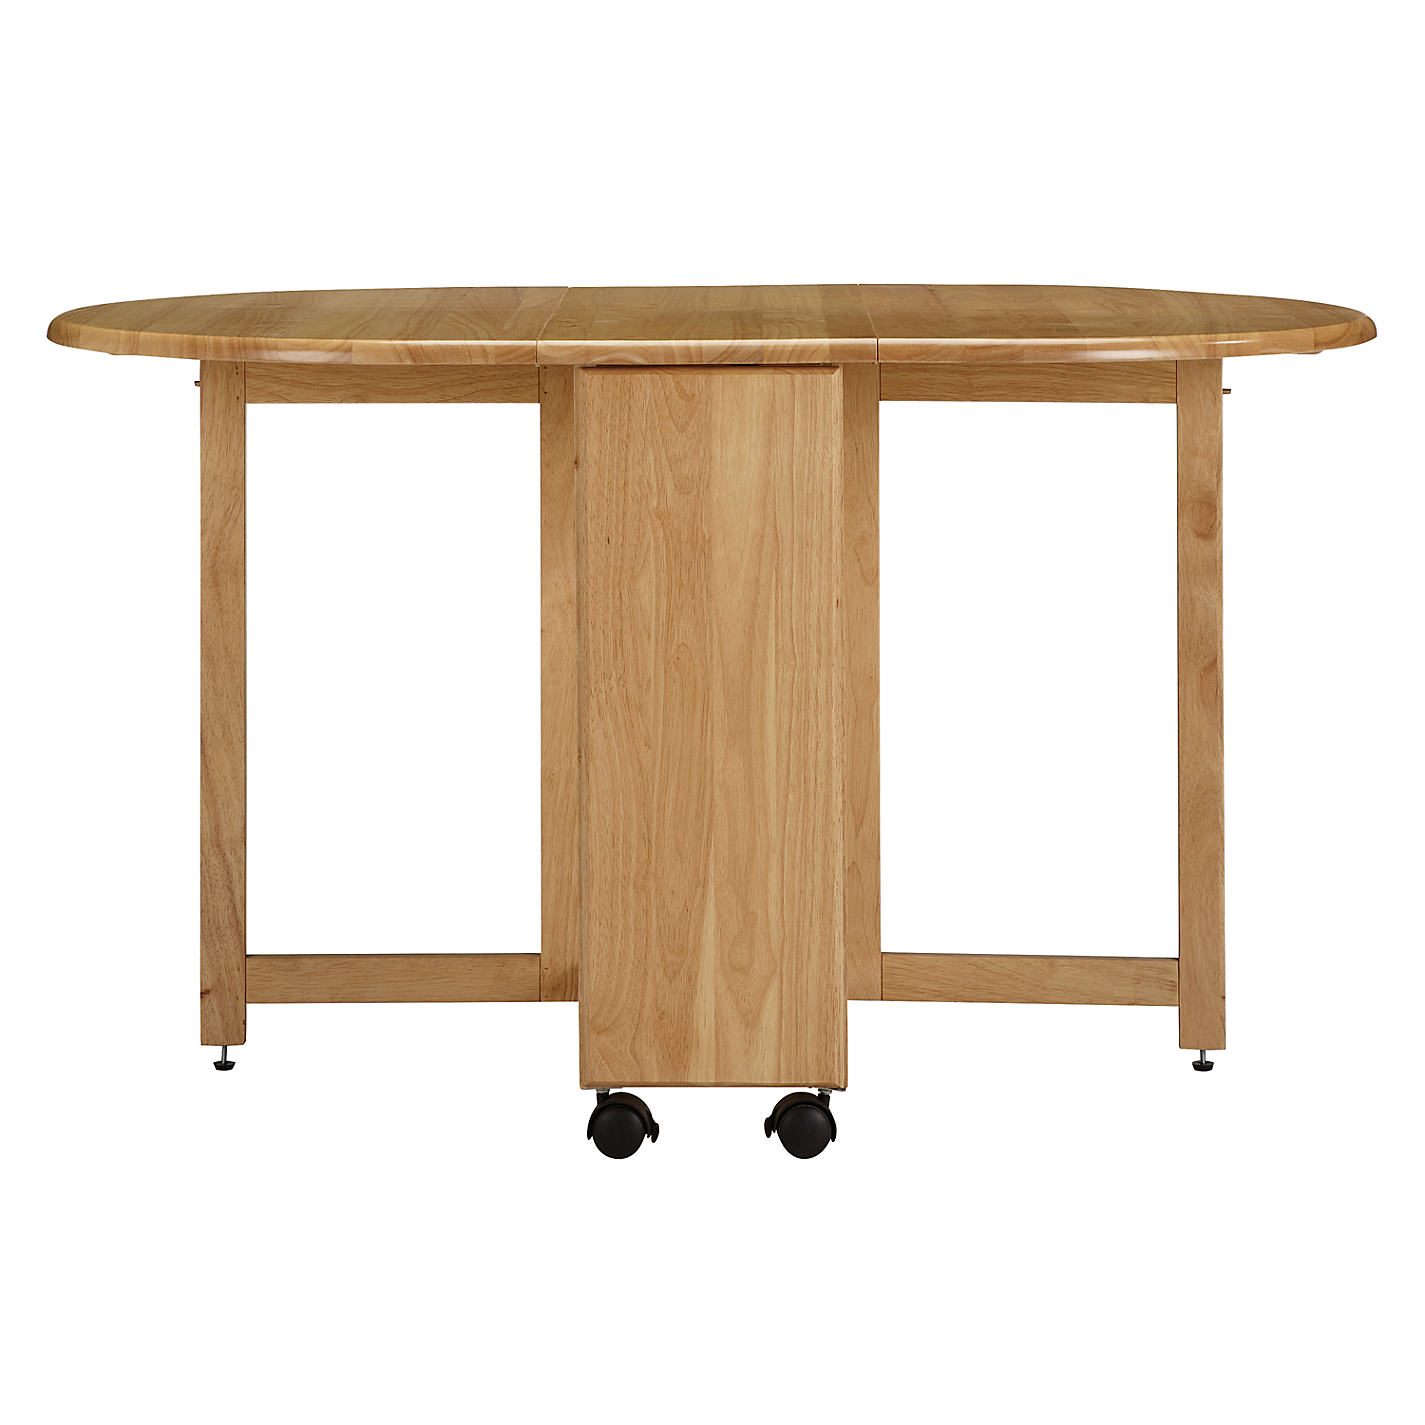 Ikea Mandal Dresser Discontinued ~ Folding Dining Table Target  Dining Tables Ideas with Folding Table